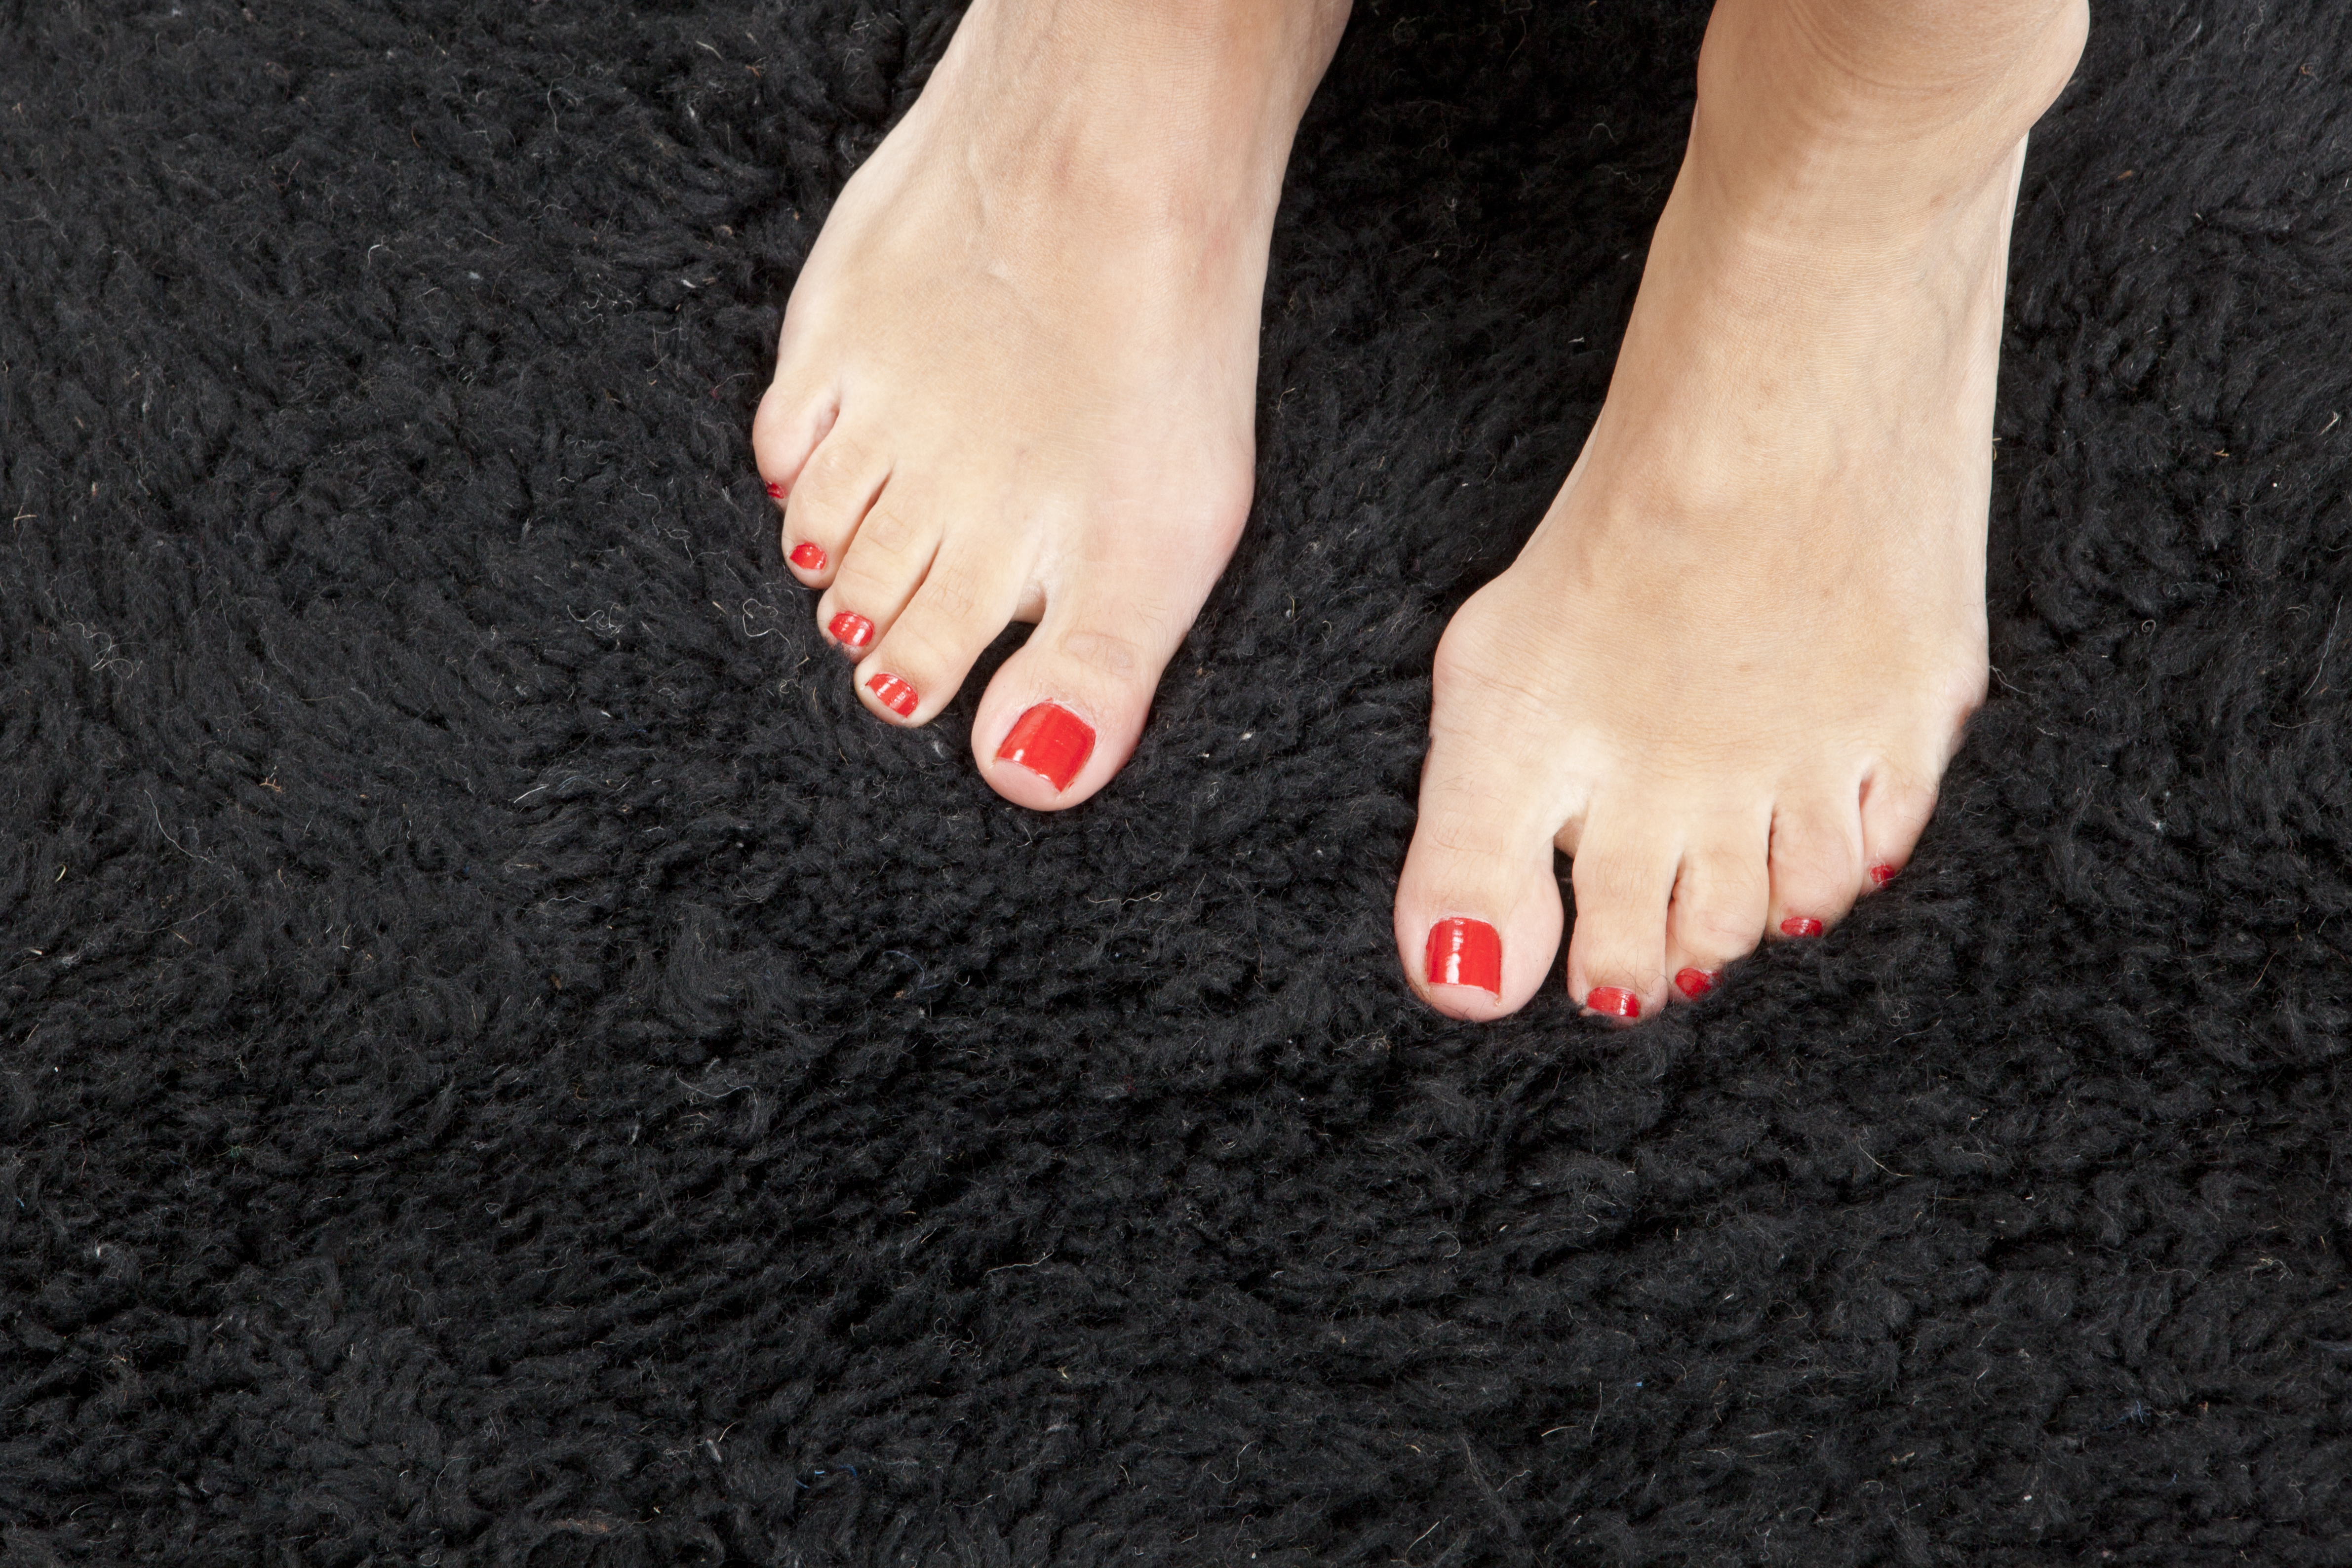 feet soft moroccan black carpet